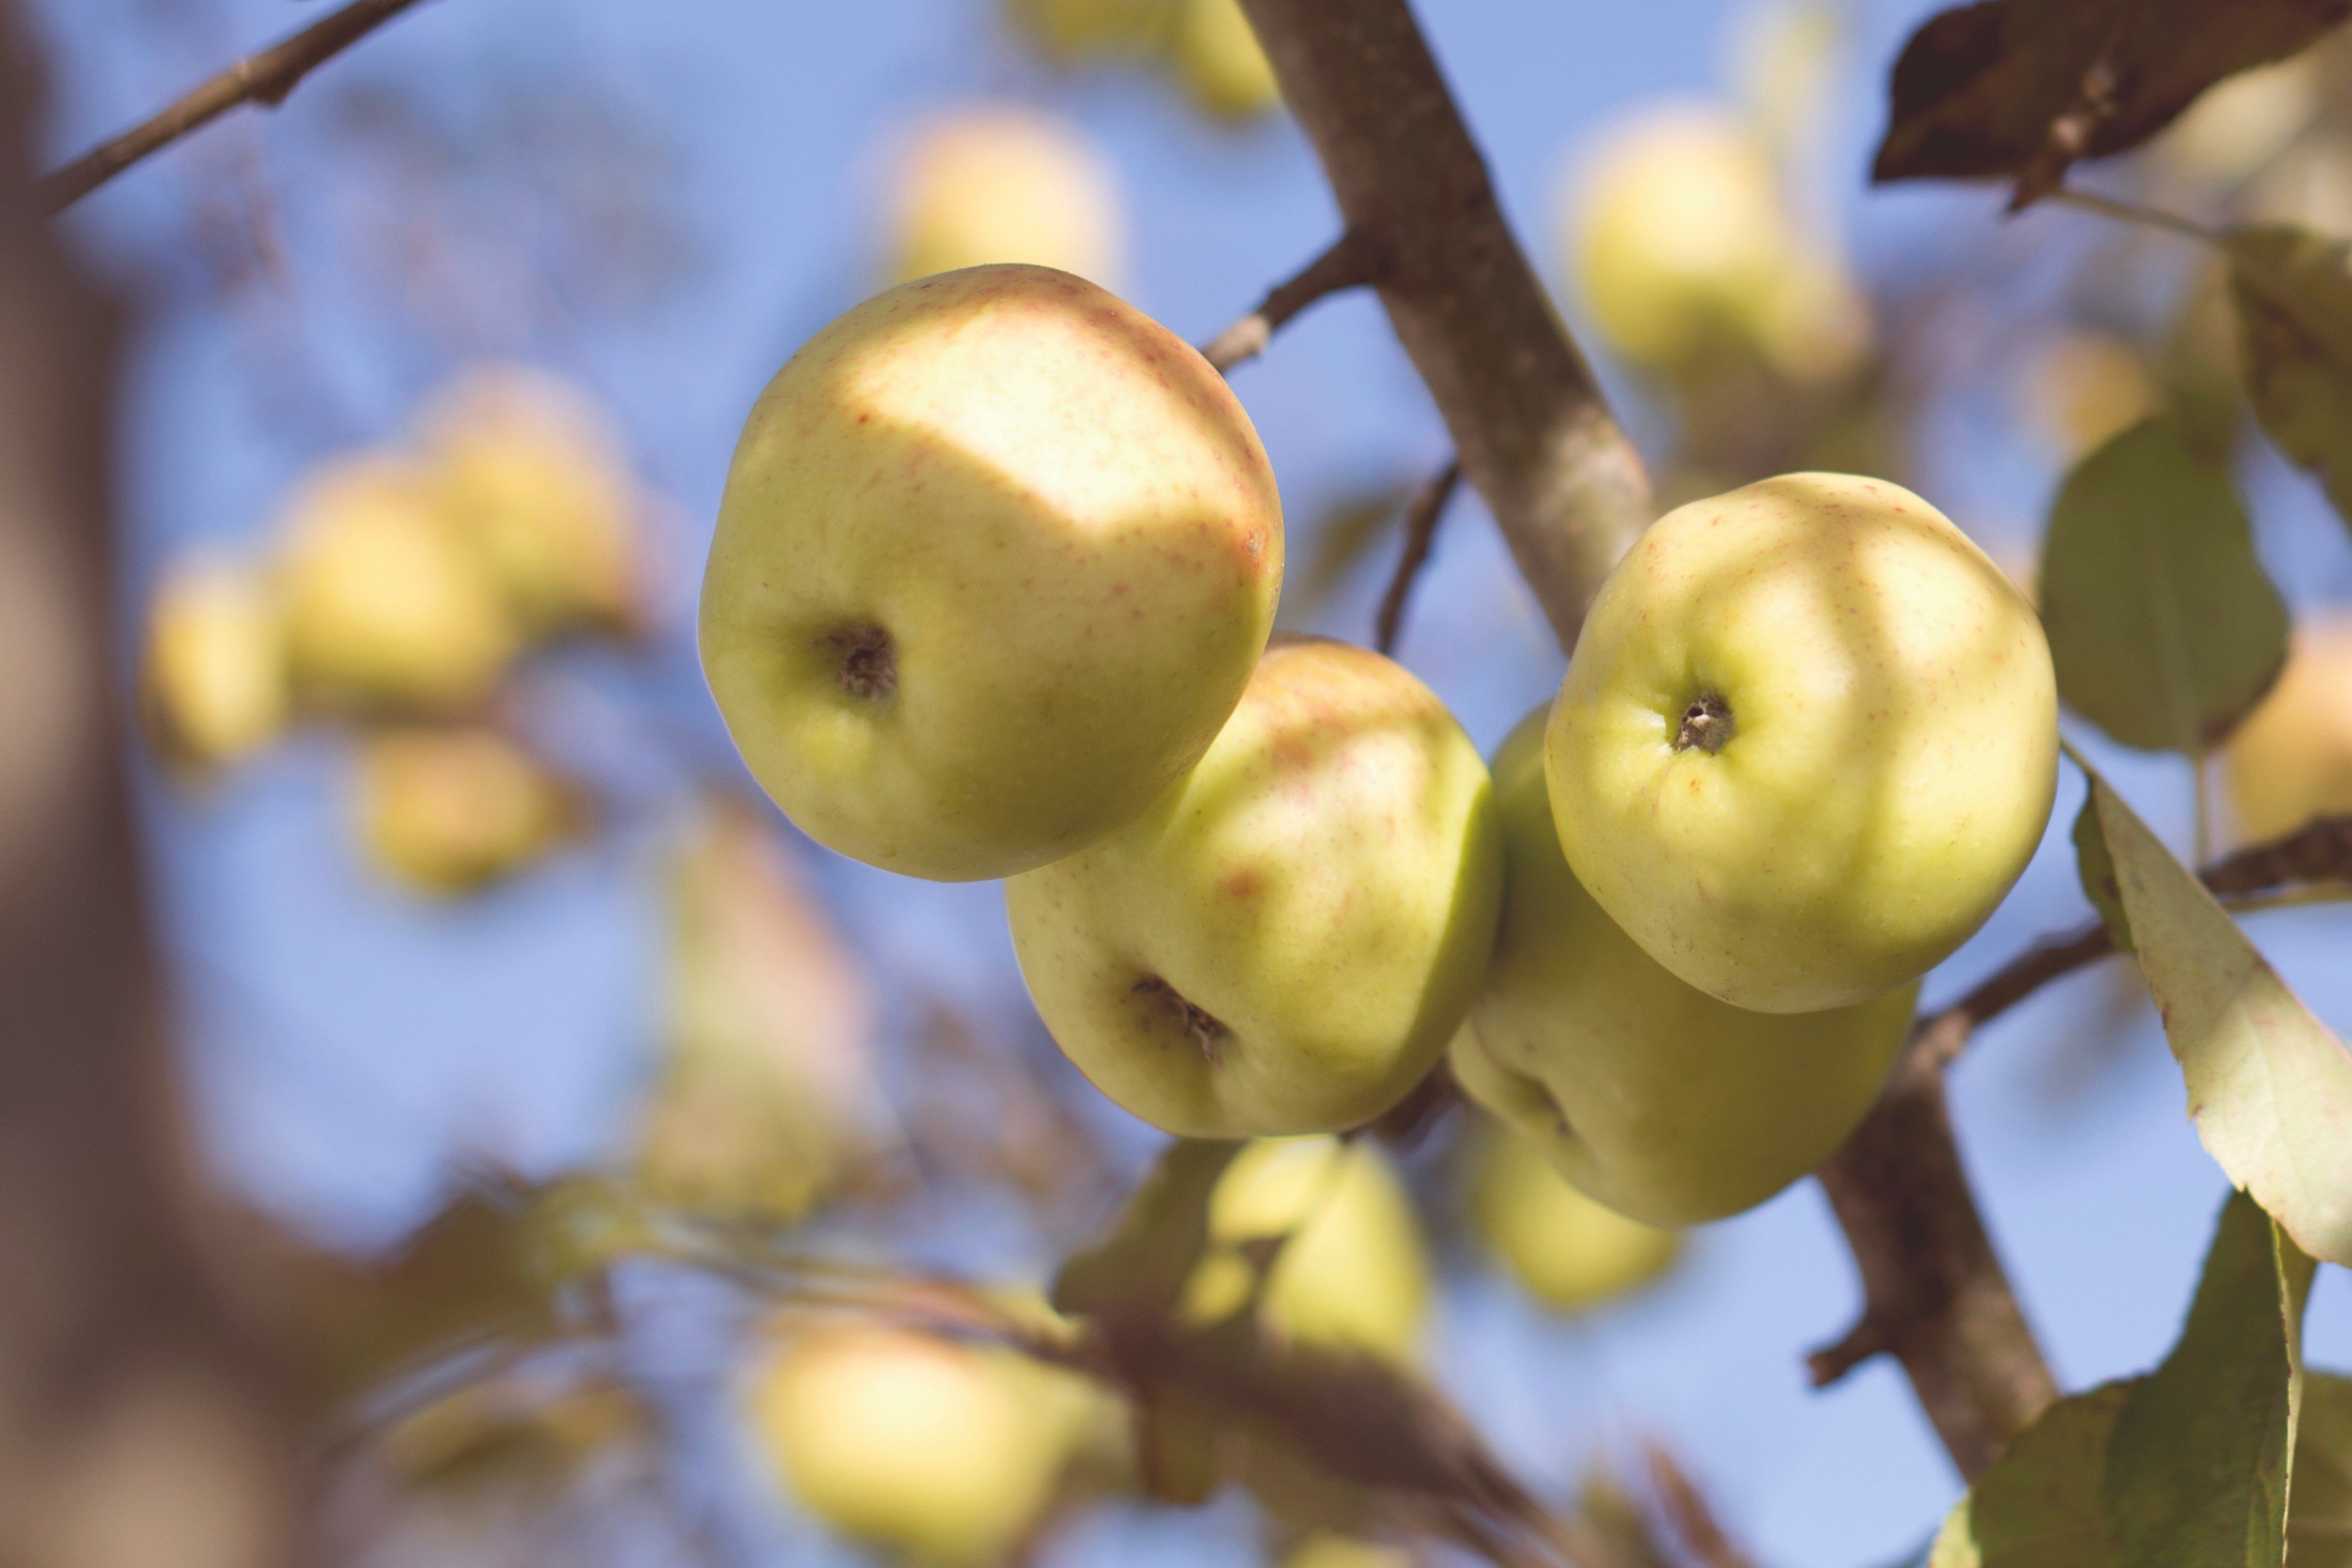 3840x2560 apple tree fruit and apple picking hd 4k wallpaper and background